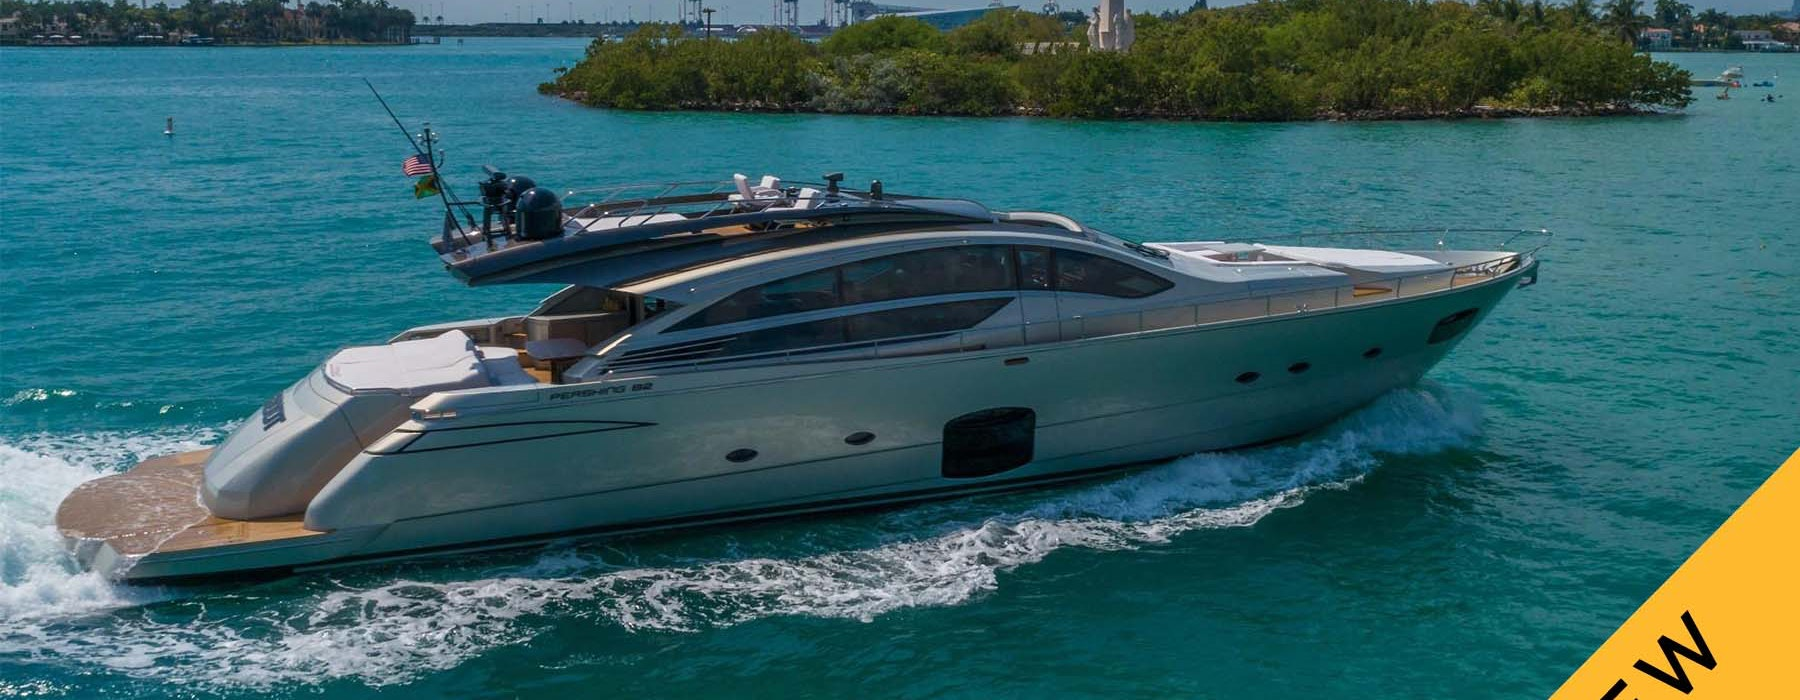 high-performance yacht Pershing GROOT for sale